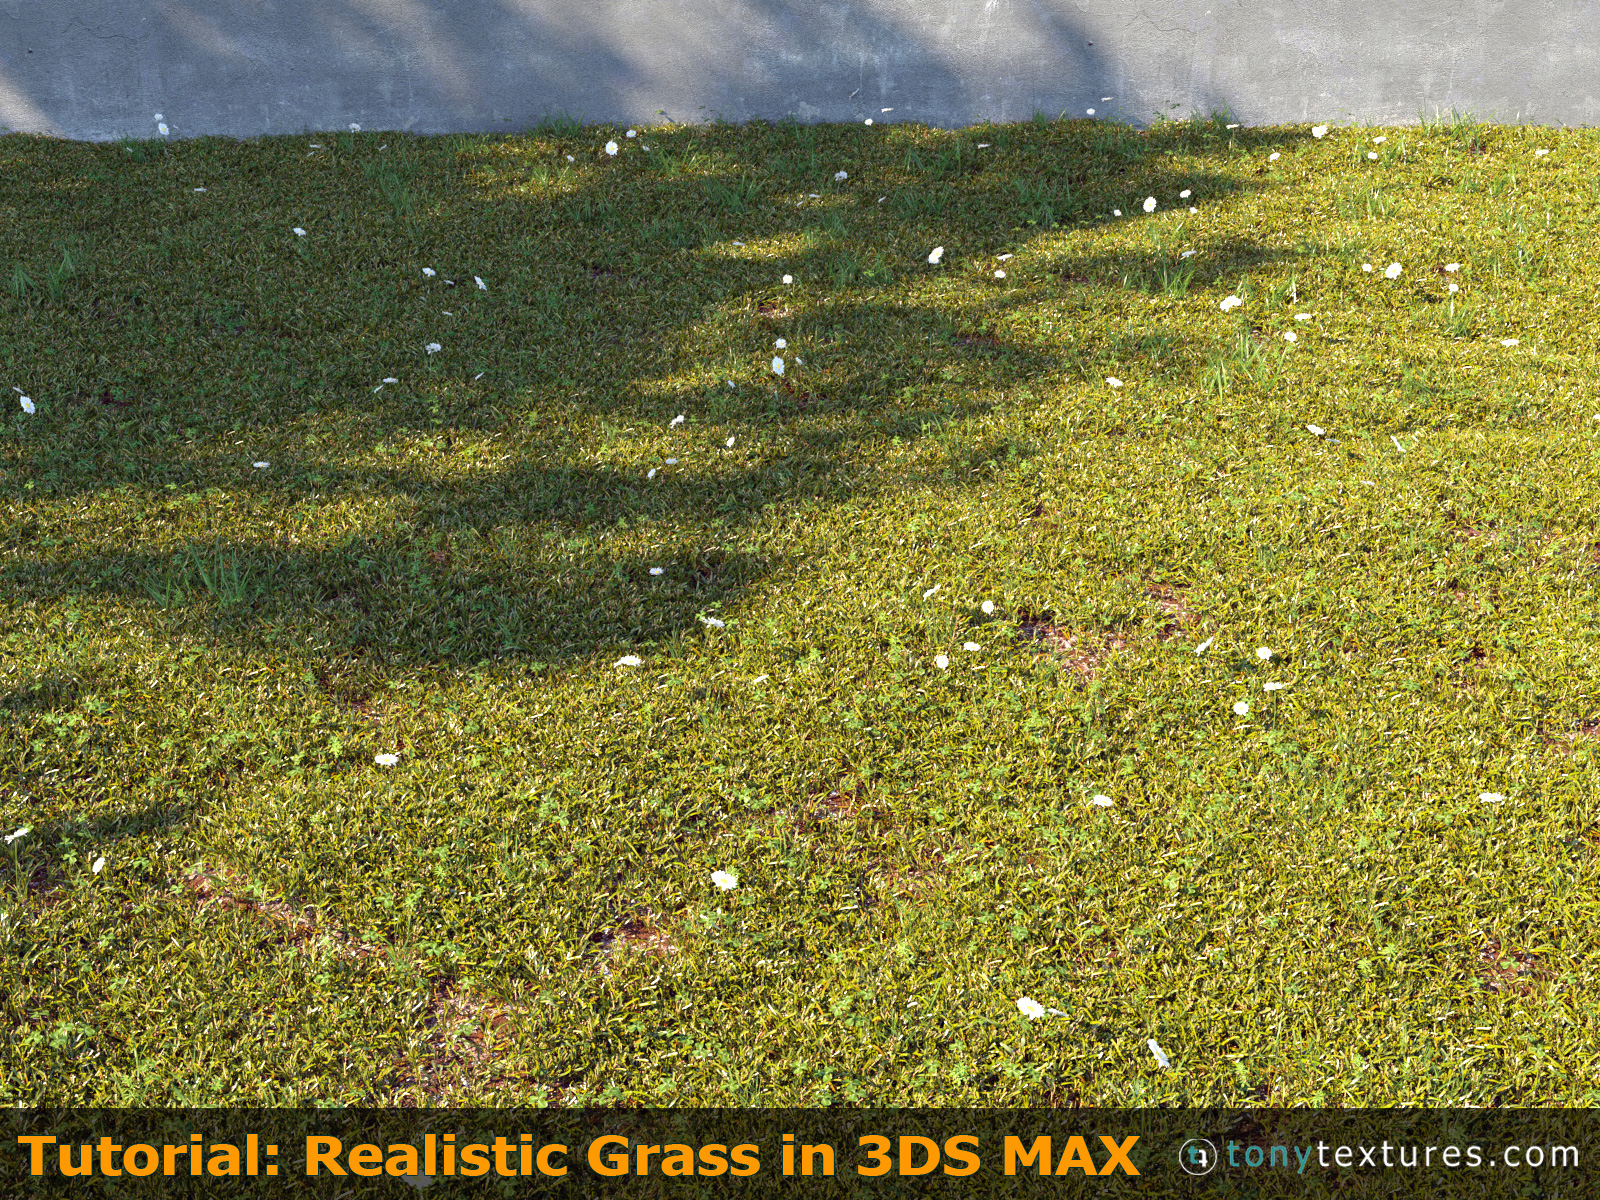 Tutorial: How to Make and Render Super Realistic 3d Grass with 3DS MAX